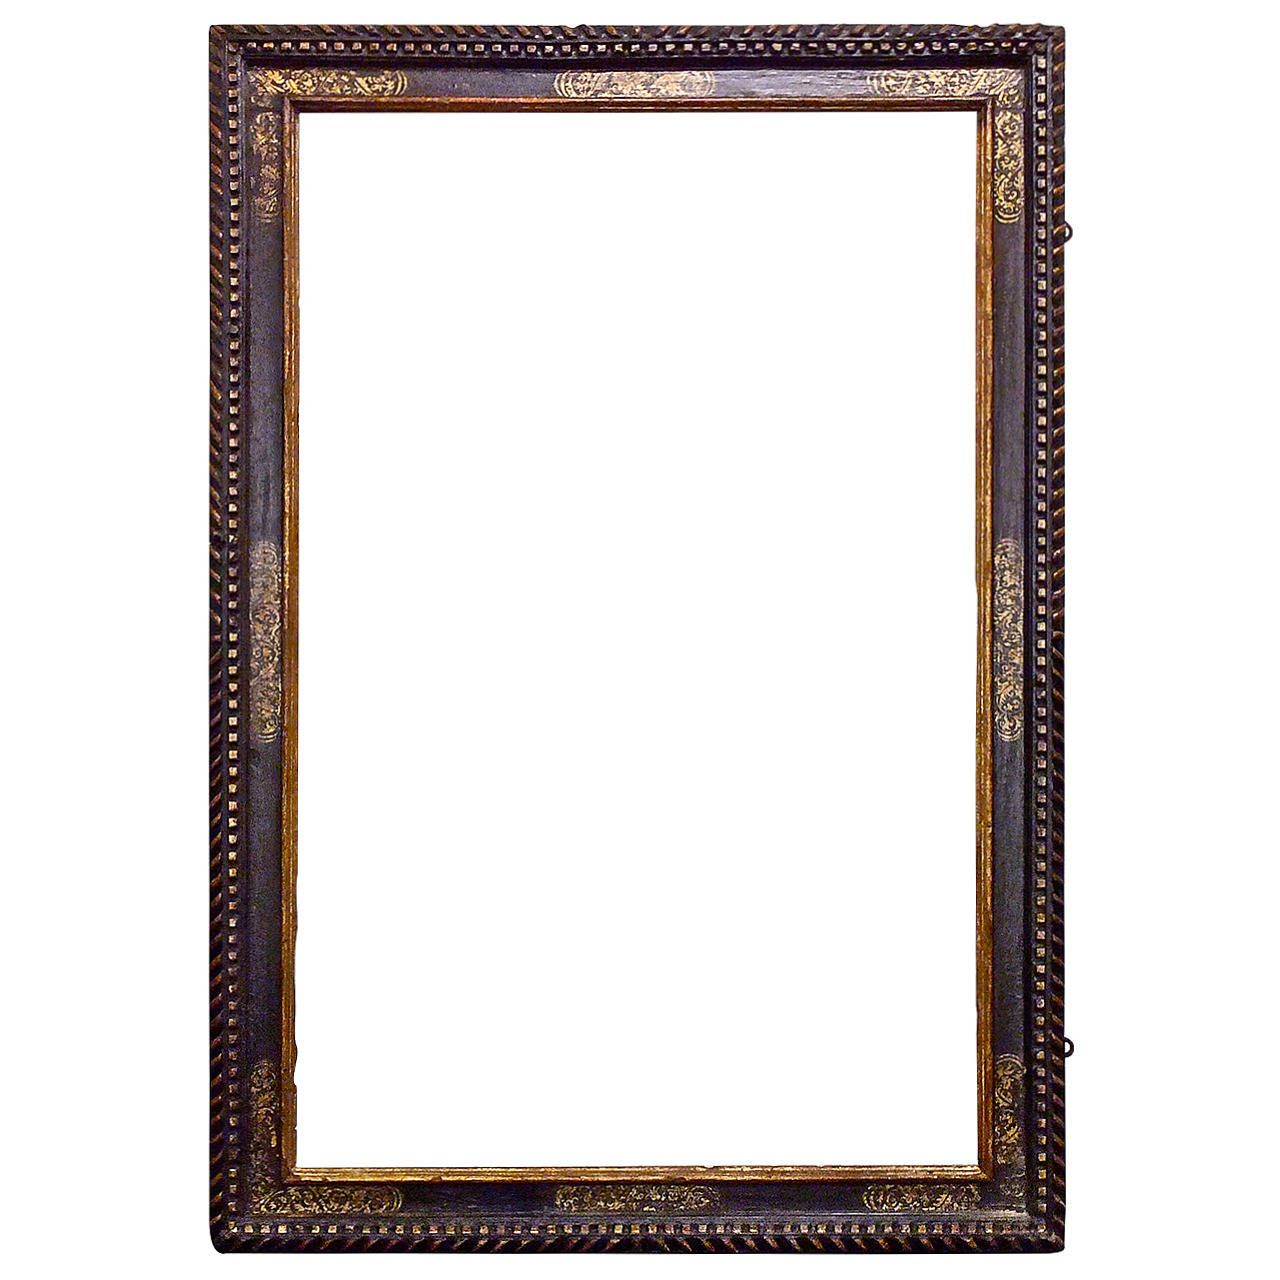 Large Carved and Gilded Spanish Baroque Frame | Spanish, Decorative ...